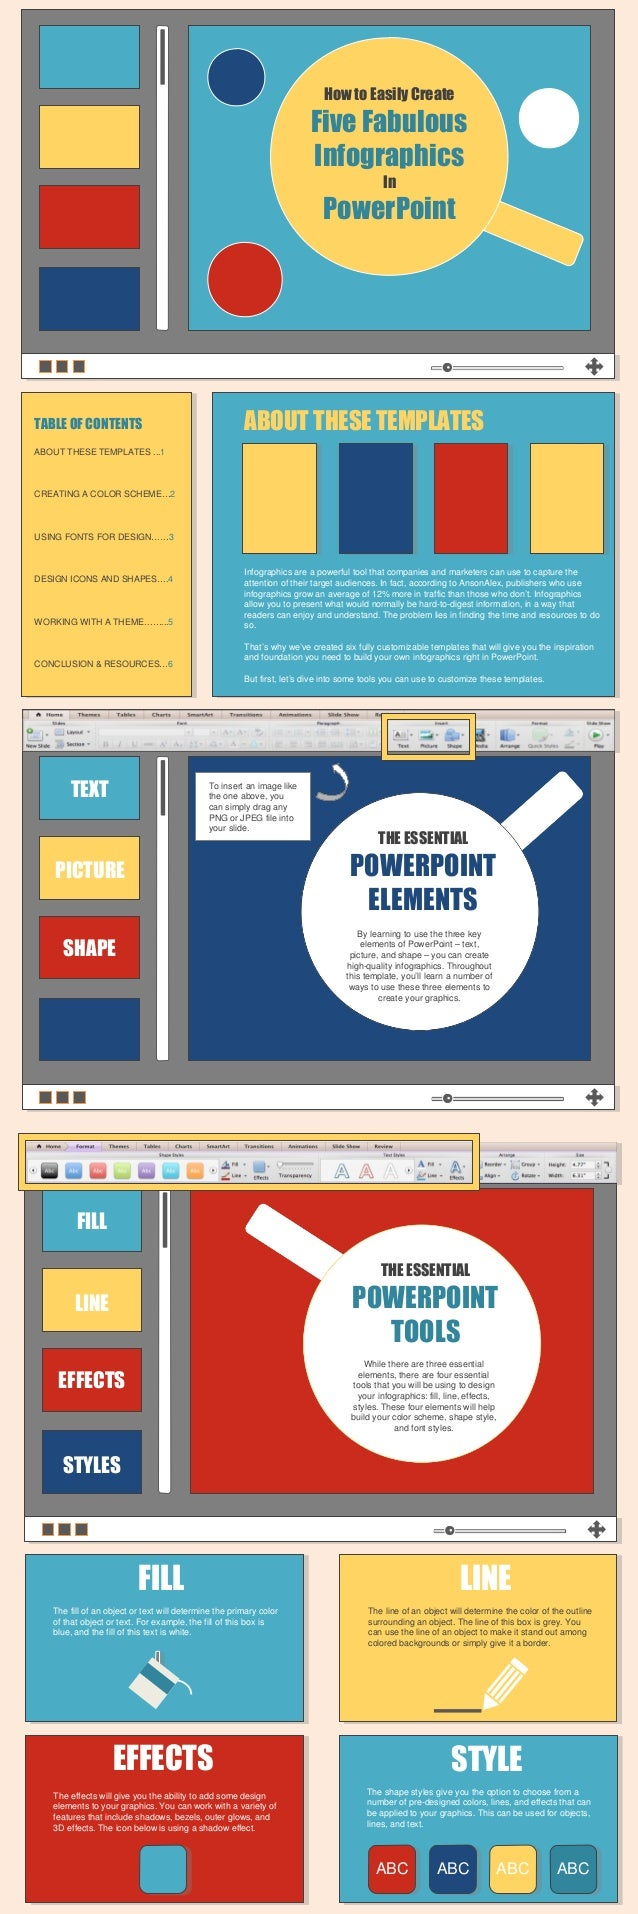 [Hub spot] how to create 5 fabulous infographics in powerpoint